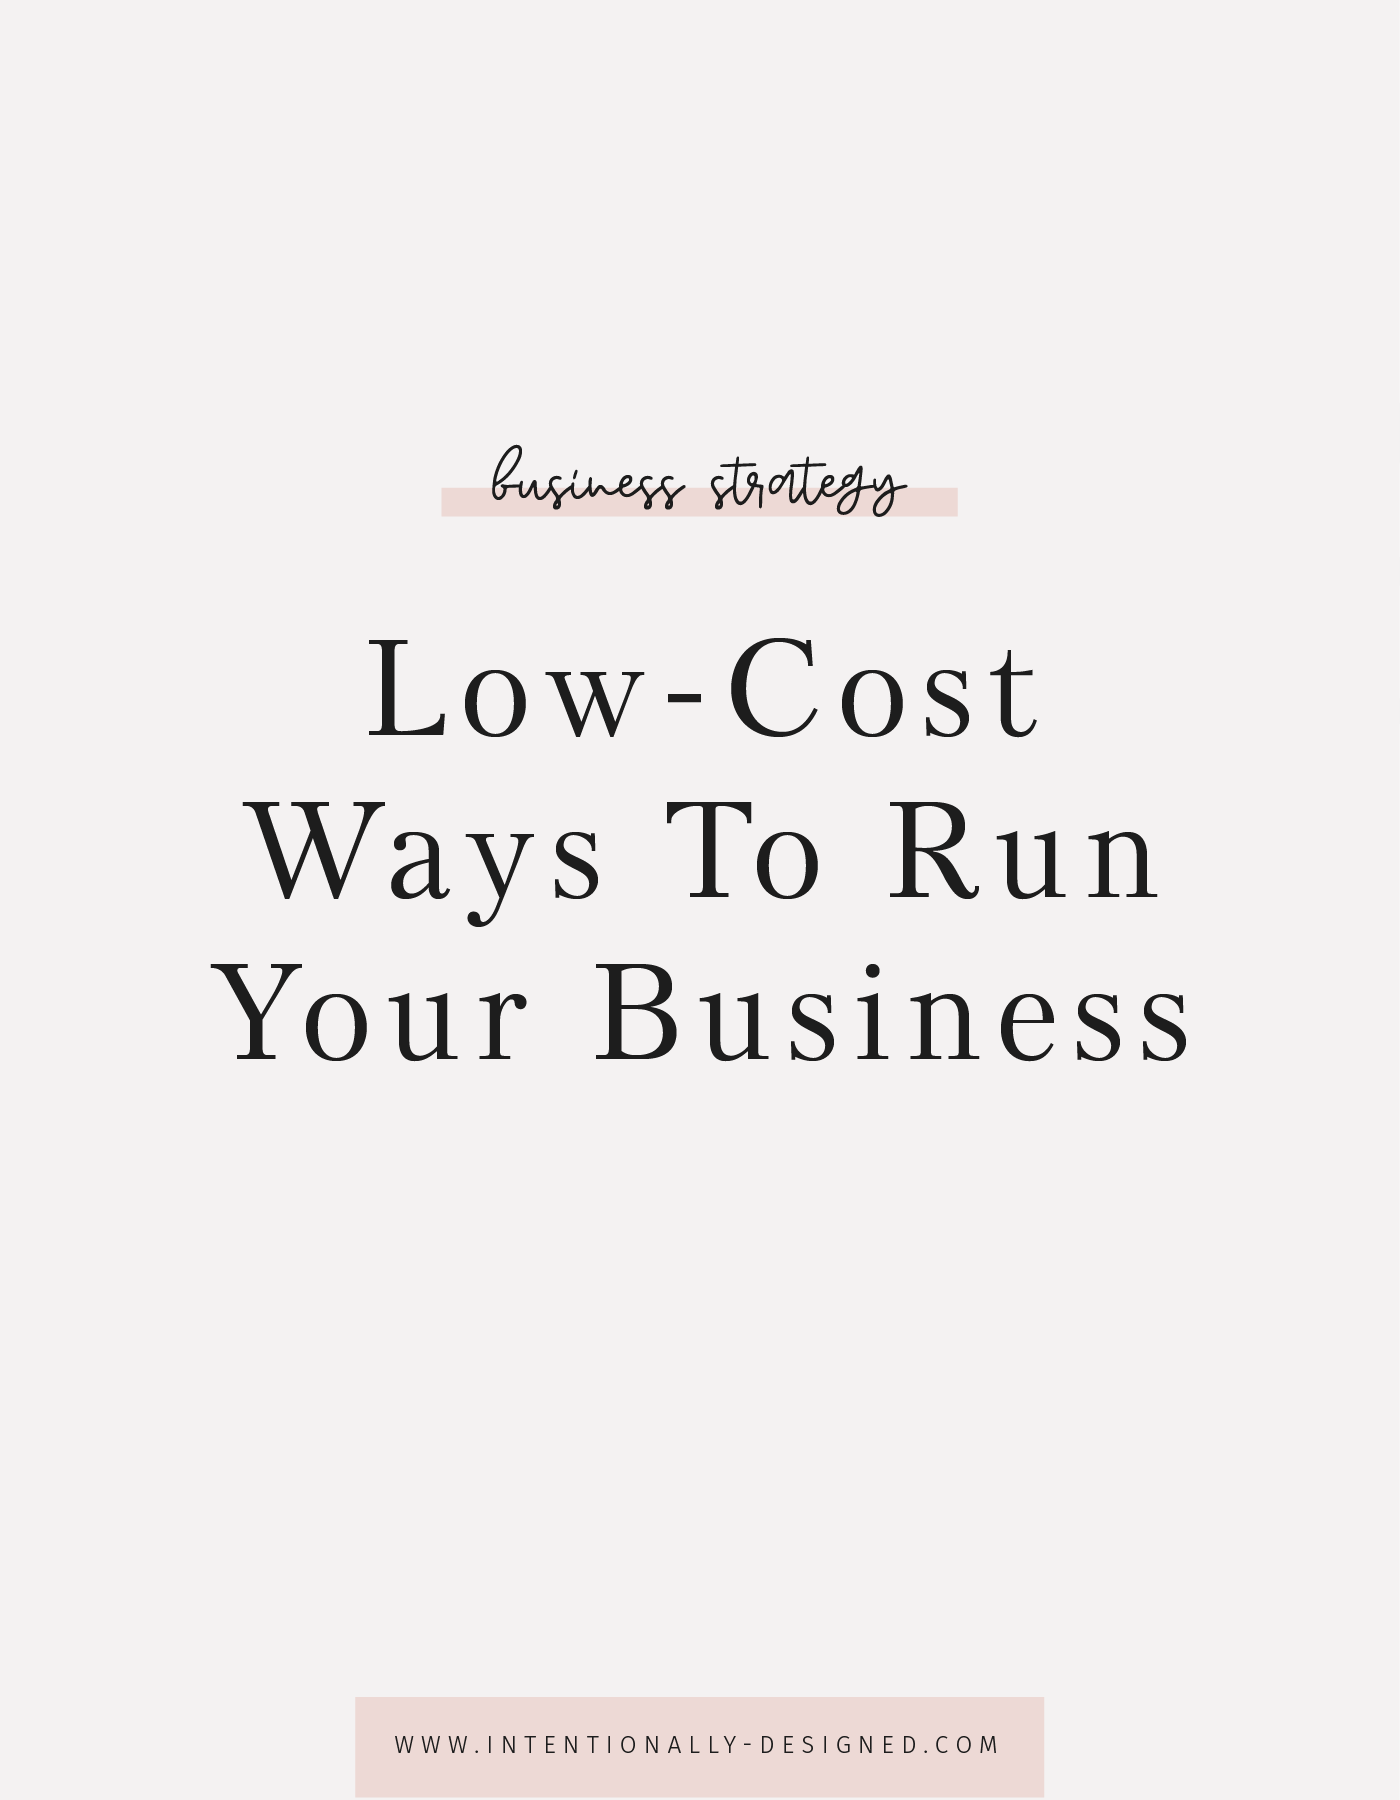 Low-Cost Ways To Run Your Business